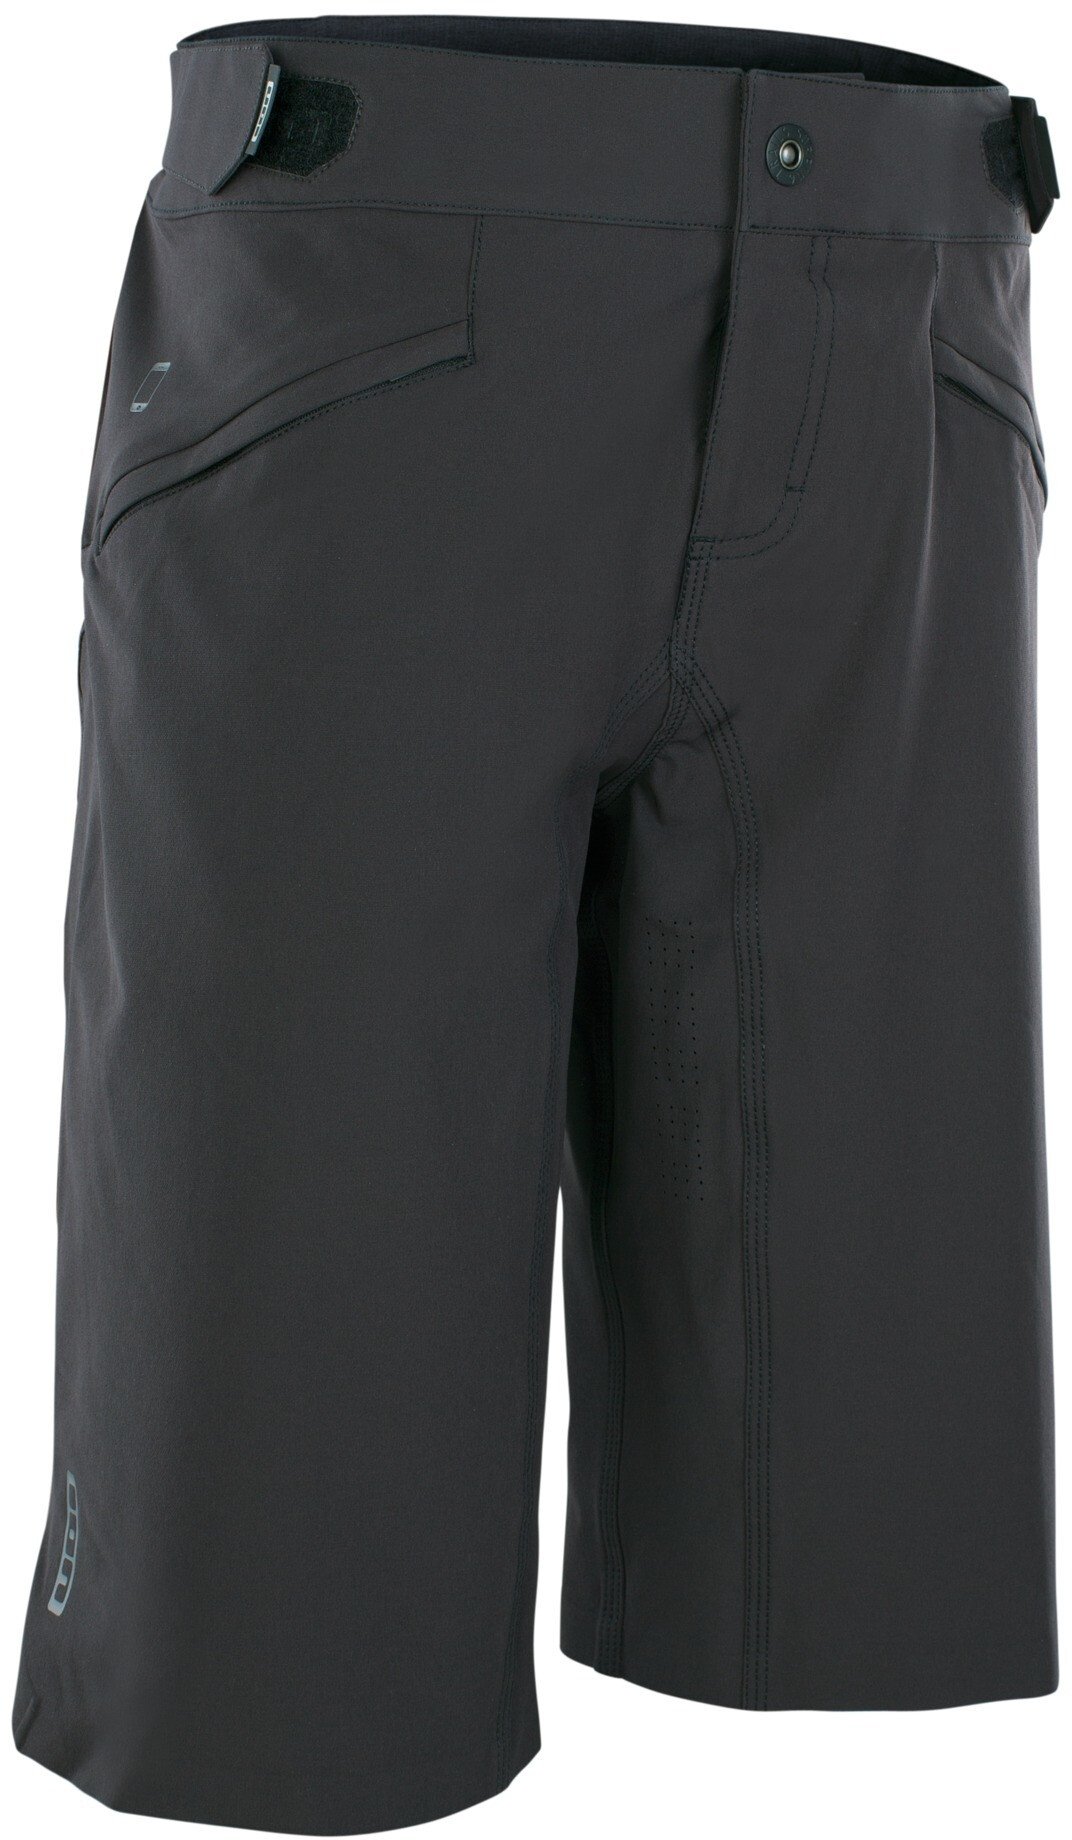 ION In-Shorts Long black leaves 32//M